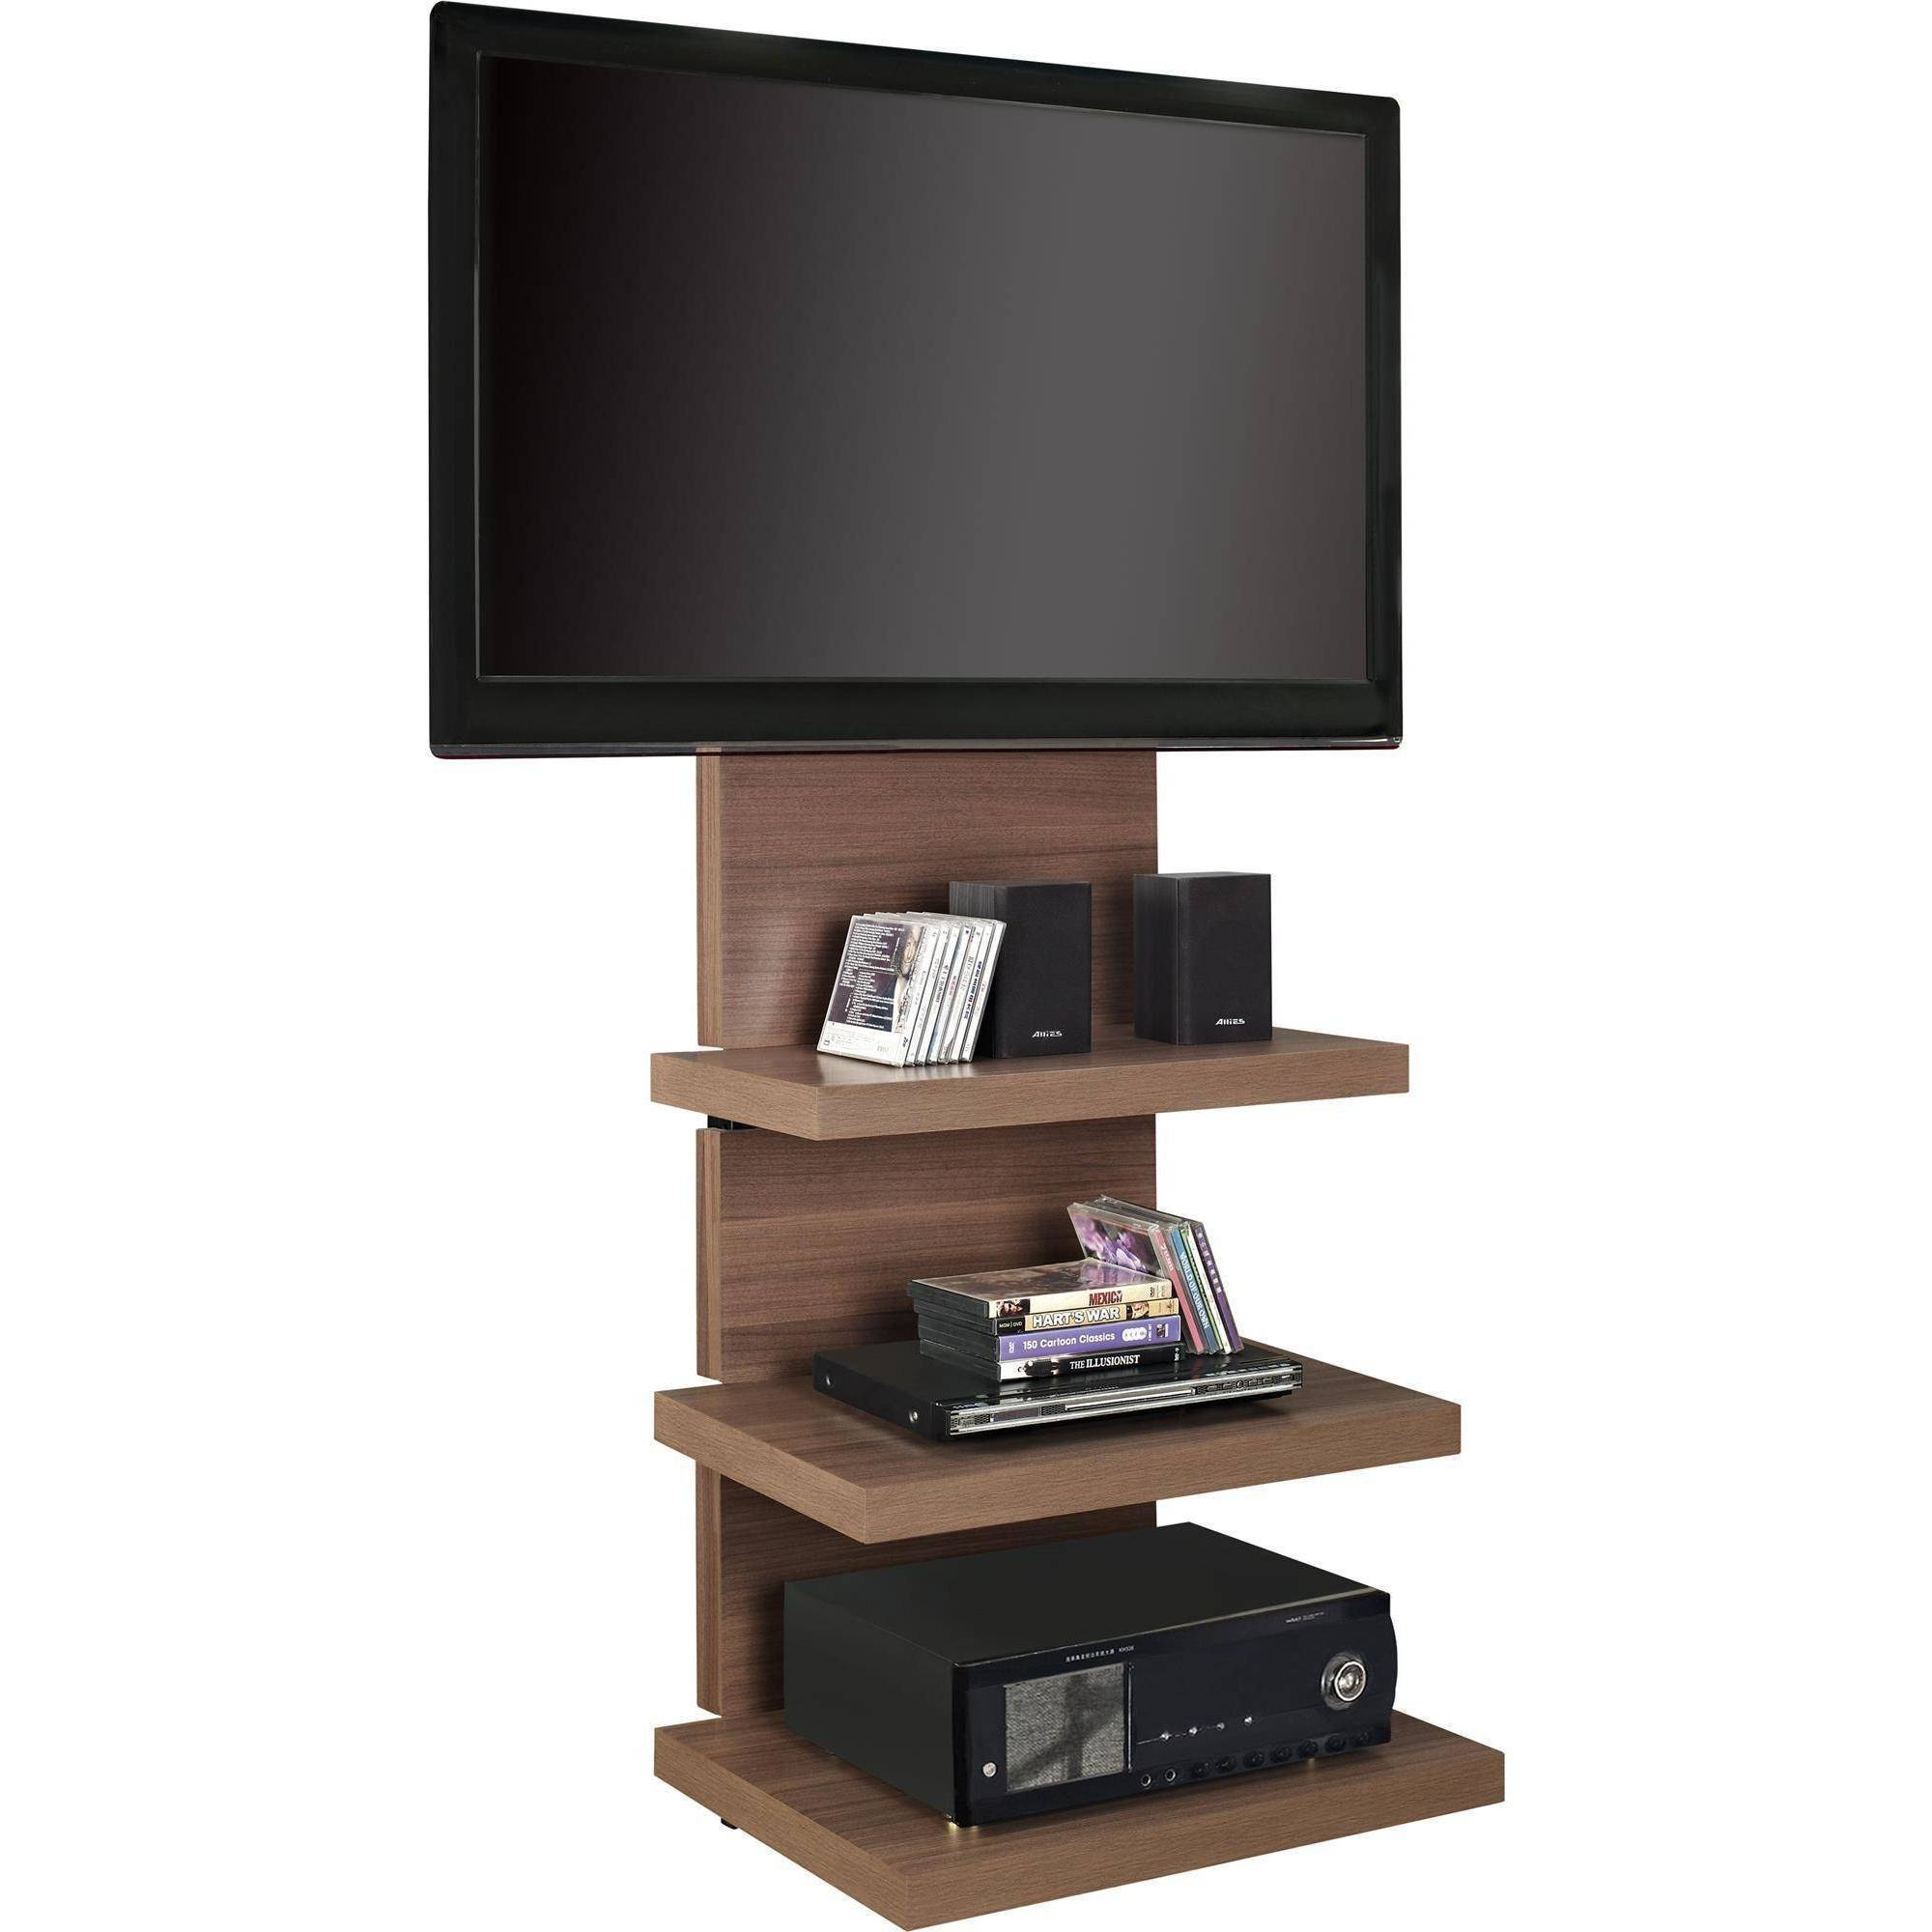 15 ideas of modern tv stands for 60 inch tvs. Black Bedroom Furniture Sets. Home Design Ideas